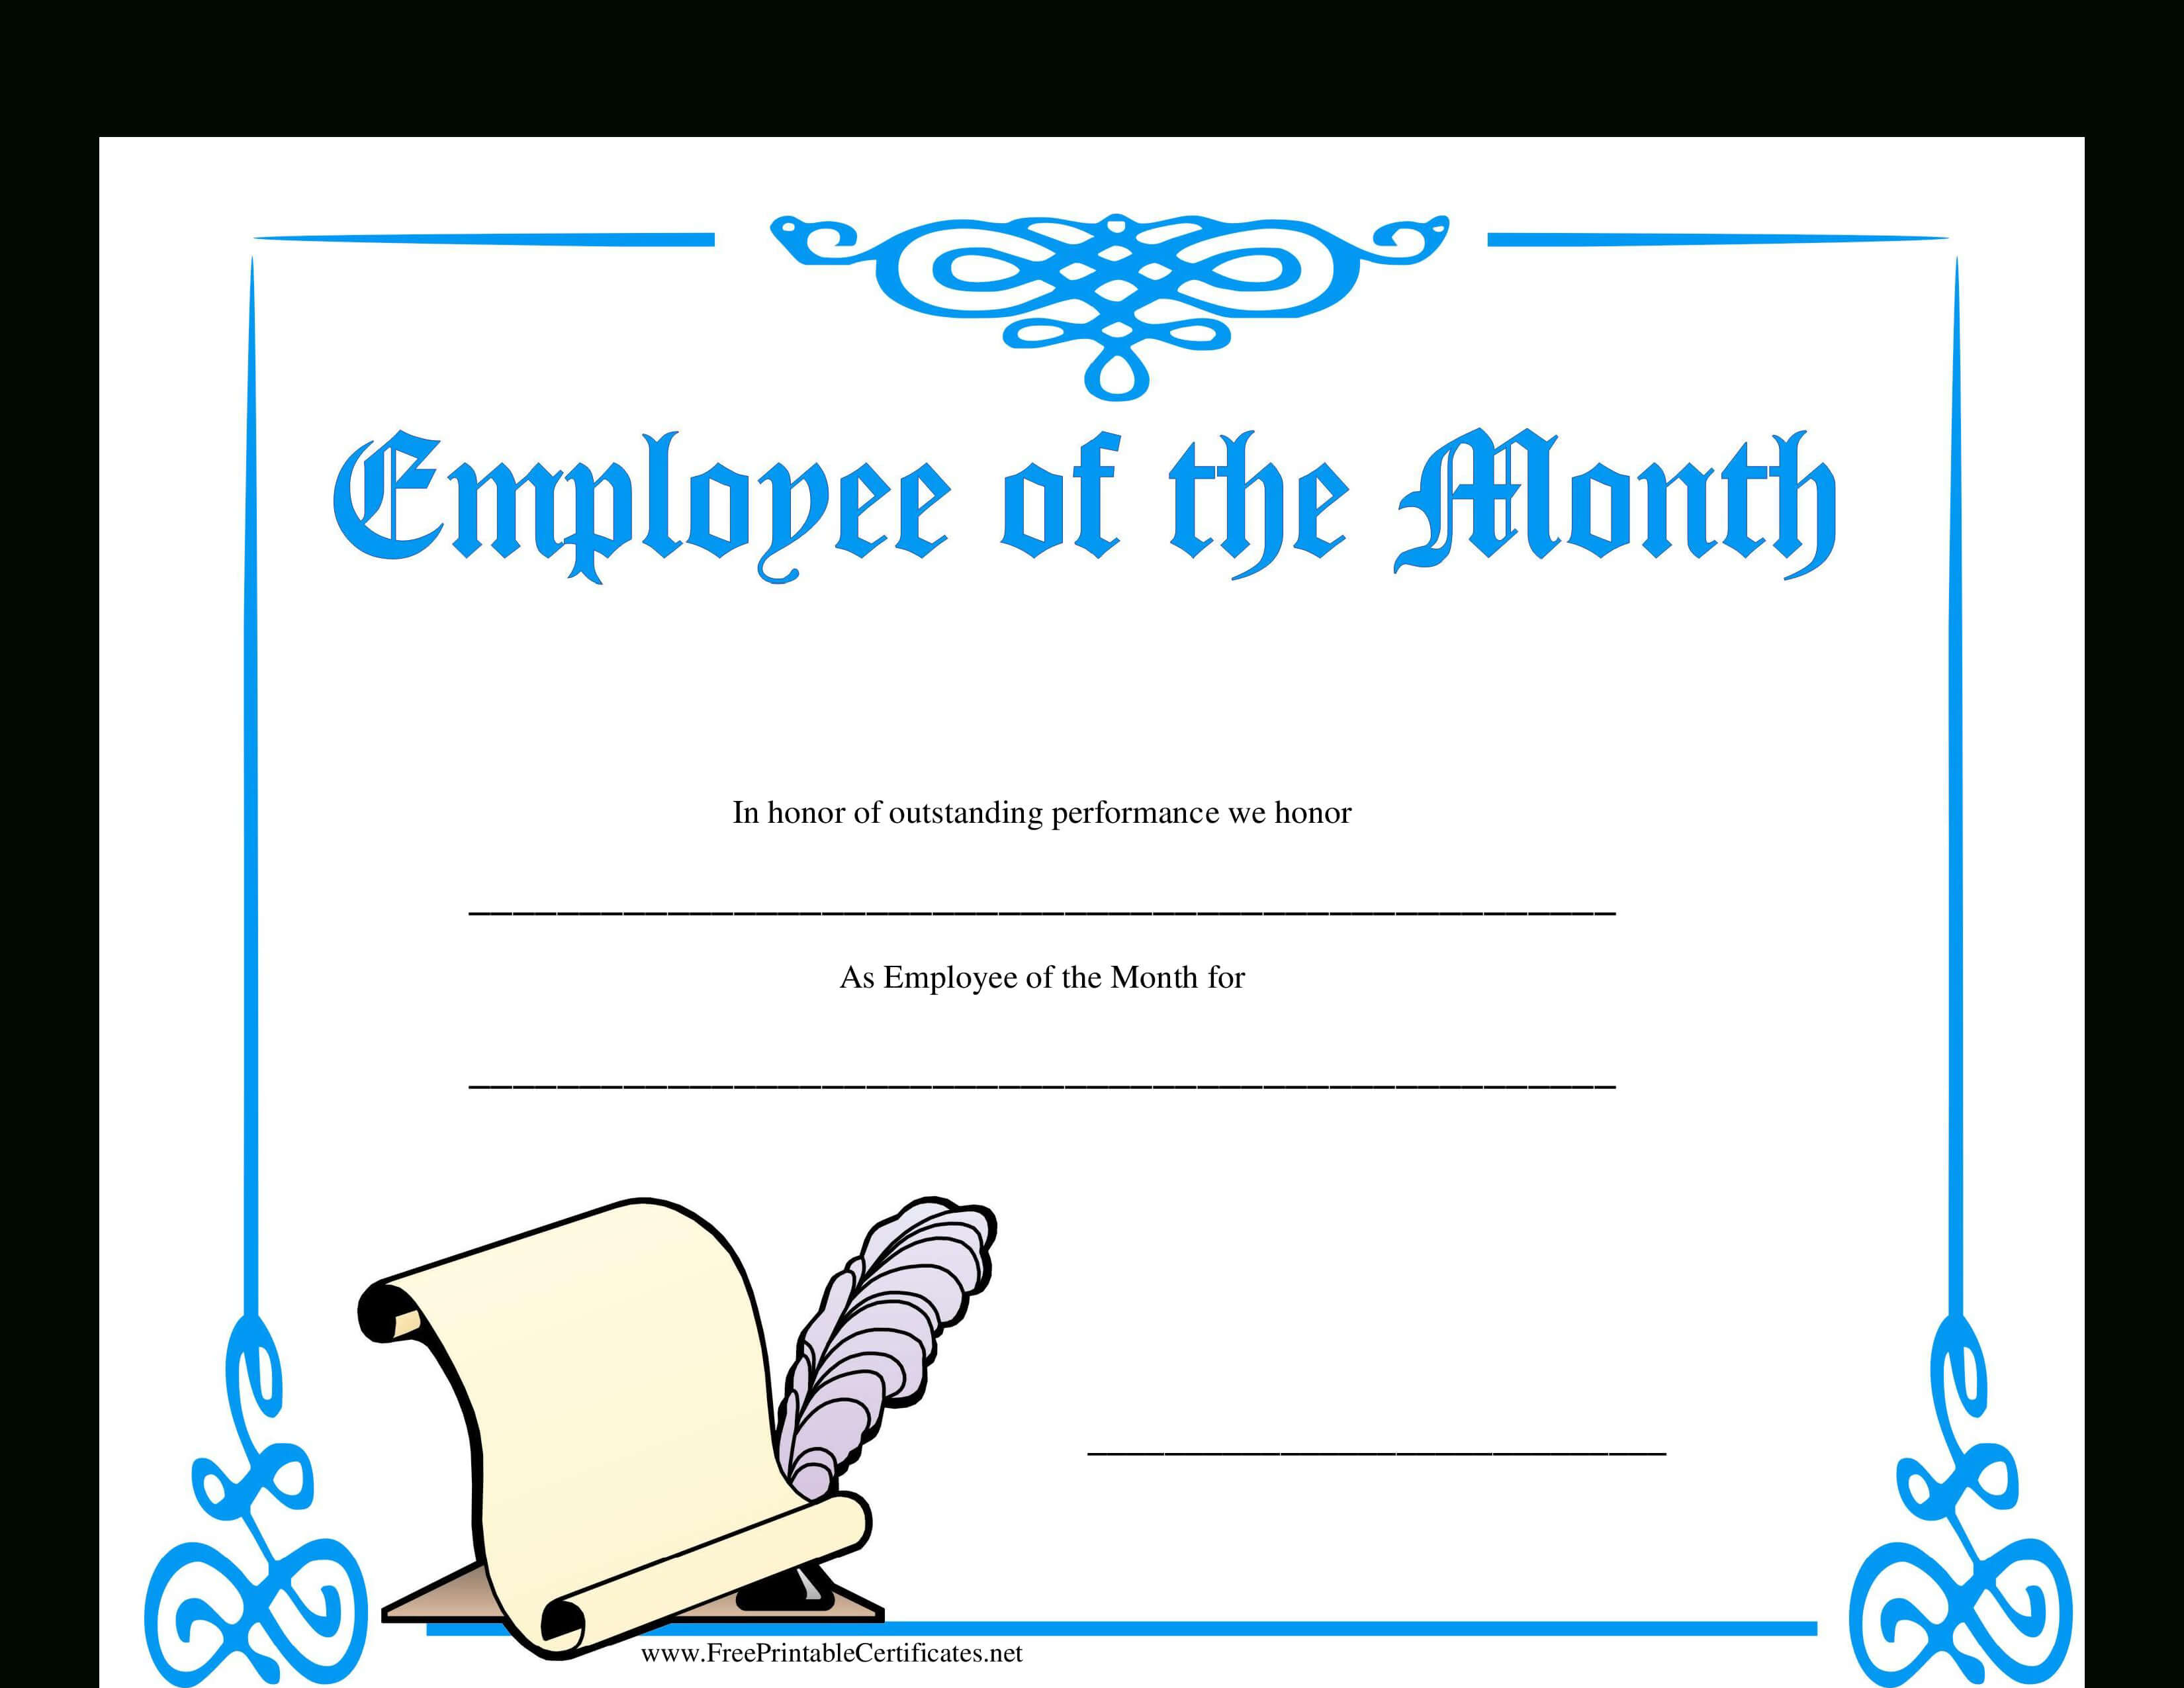 Employee Of The Month Certificate | Templates At with regard to Employee Of The Month Certificate Template With Picture